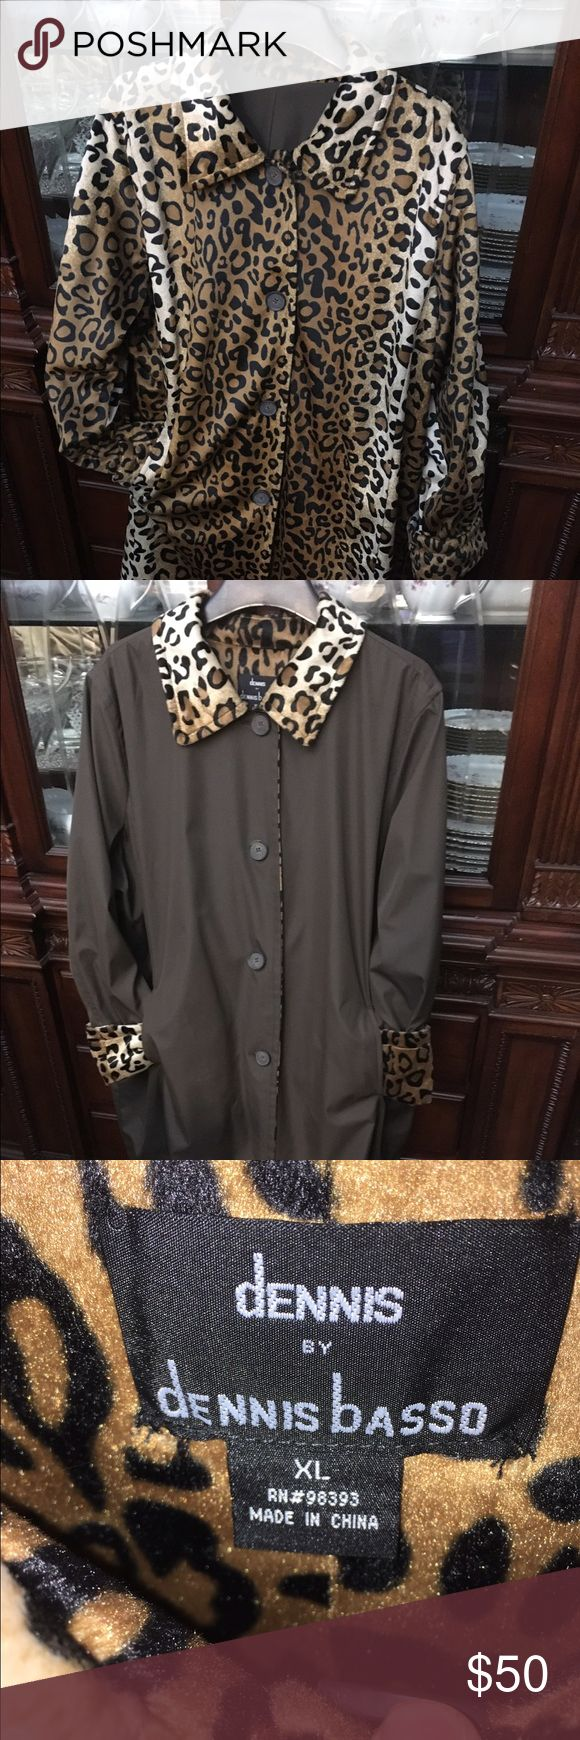 Dennis Basso all weather reversible coat All weather, machine washable coat. Practically new! Size XL could fit 1 XL Dennis Basso Jackets & Coats Puffers